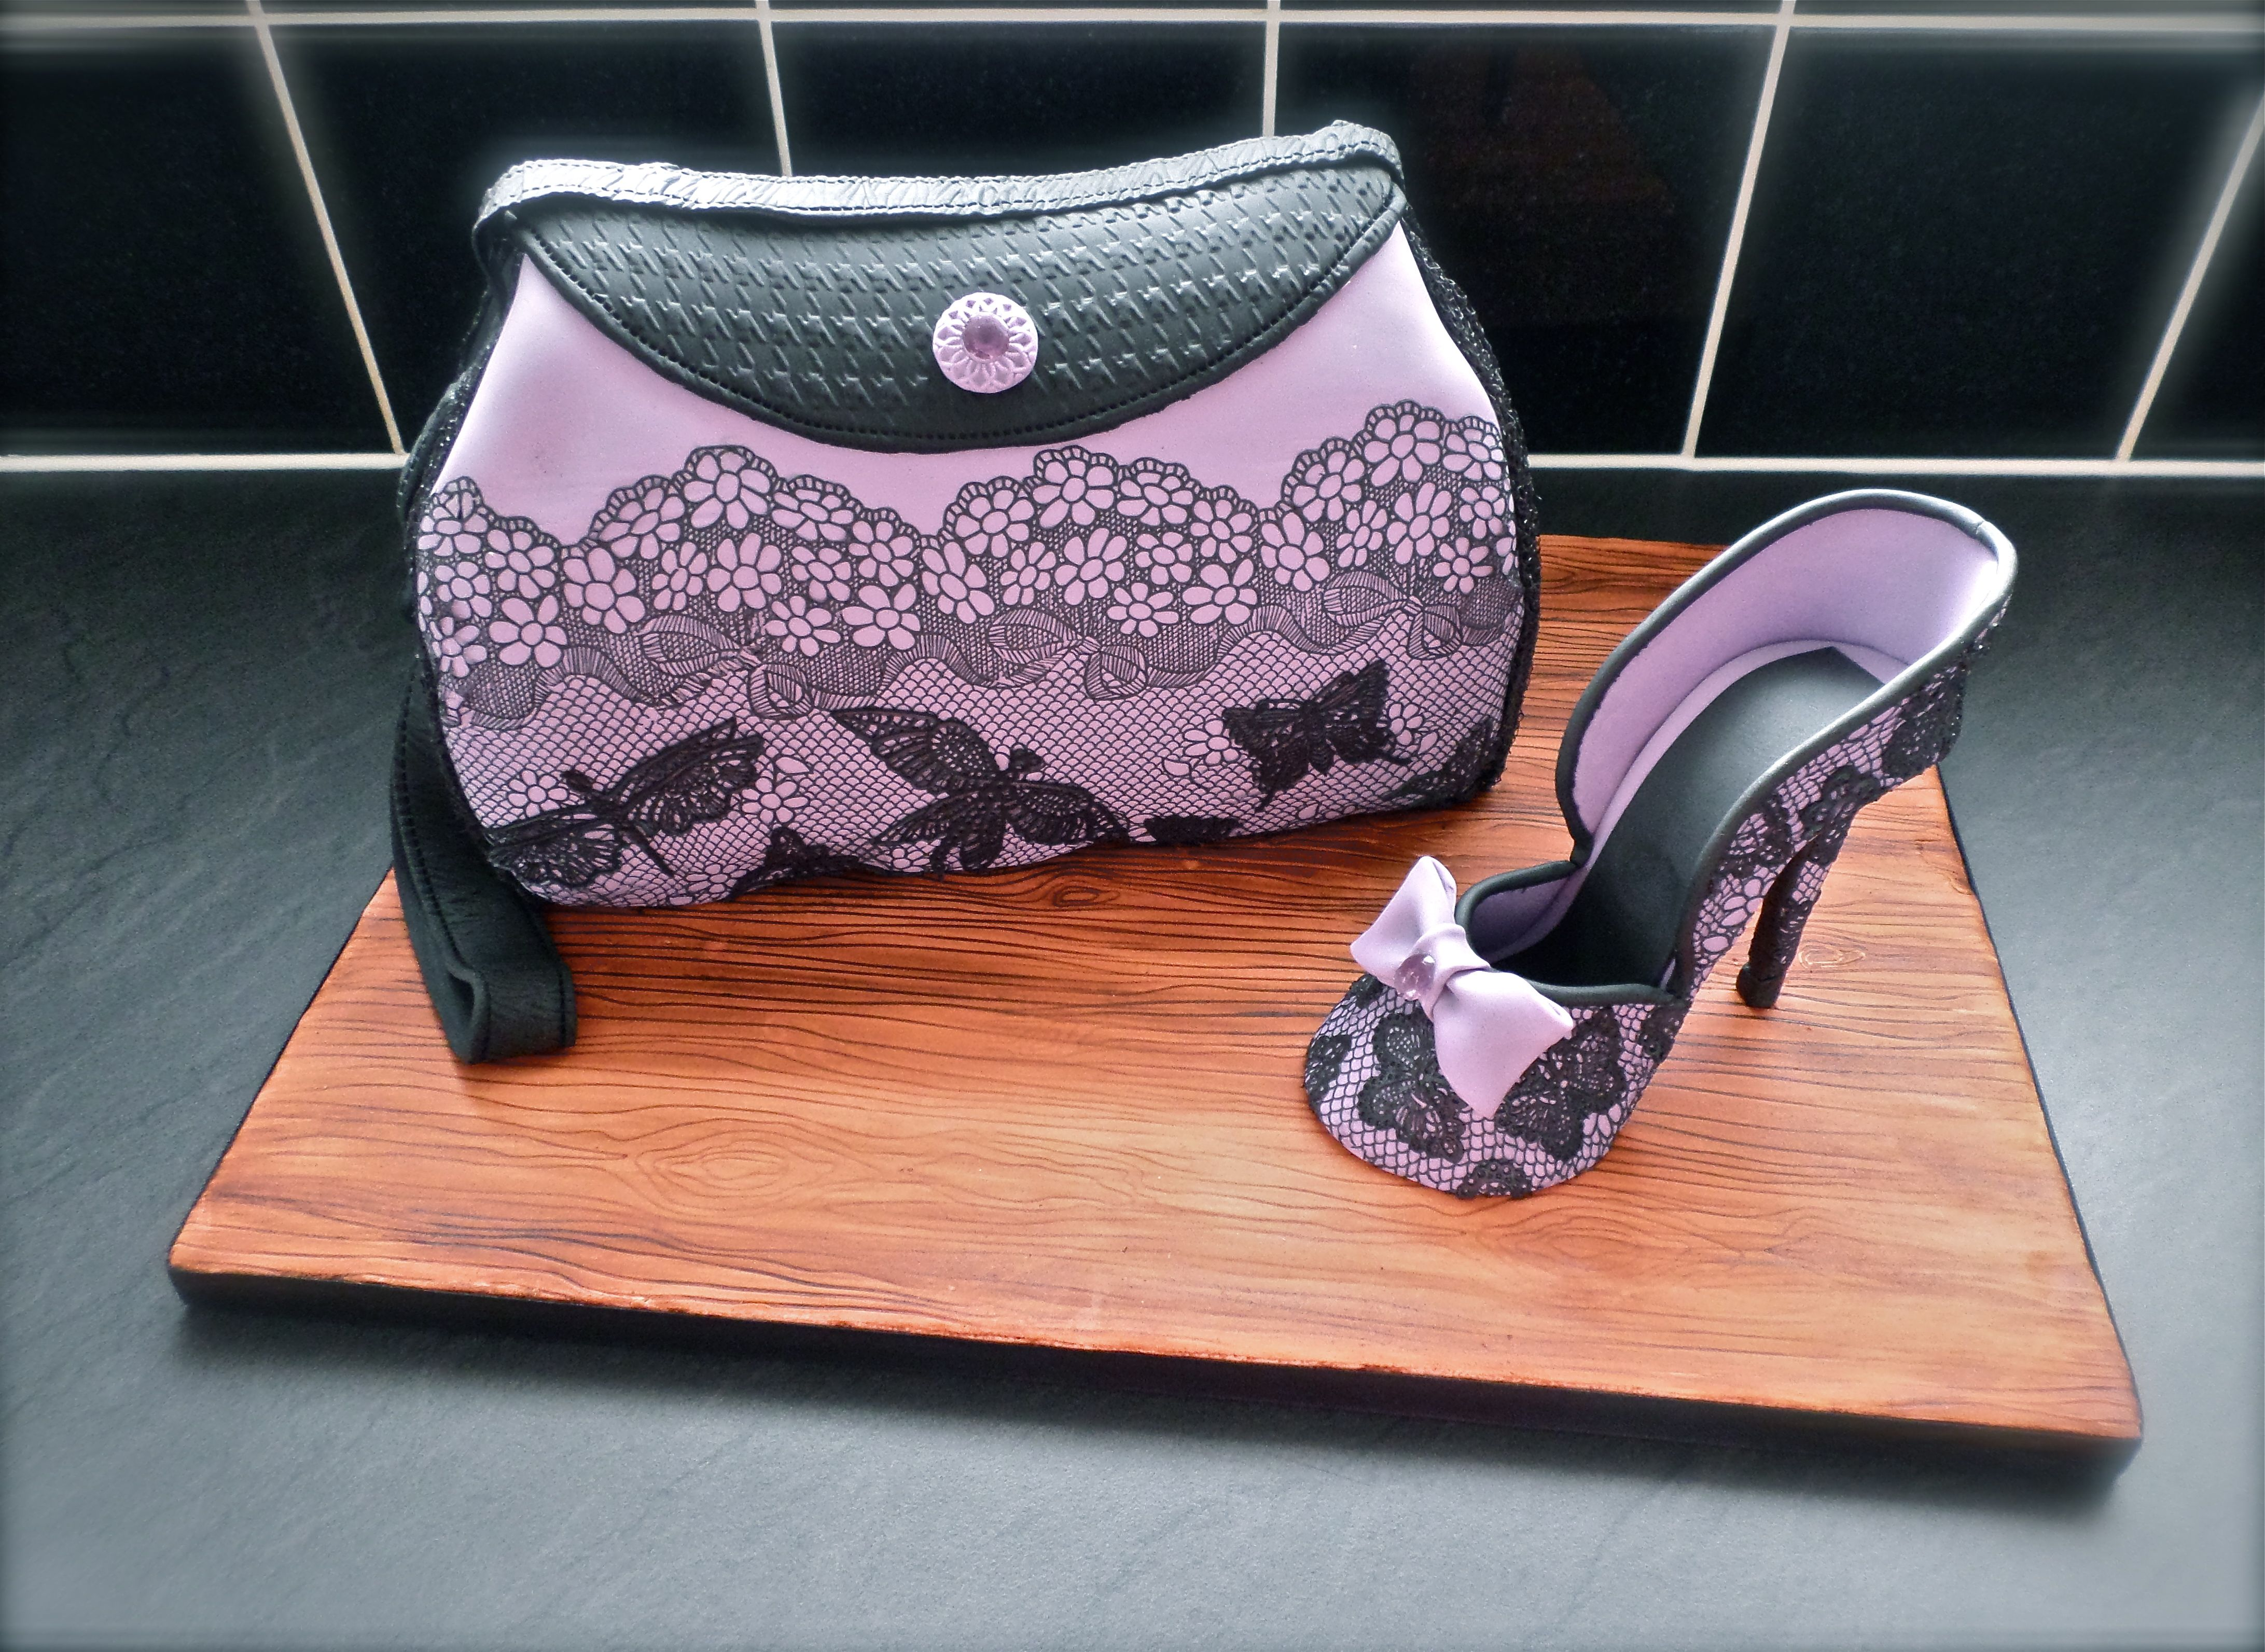 Birthday Cakes Lace Hand Bag And Shoe Cake Birthday Cakes